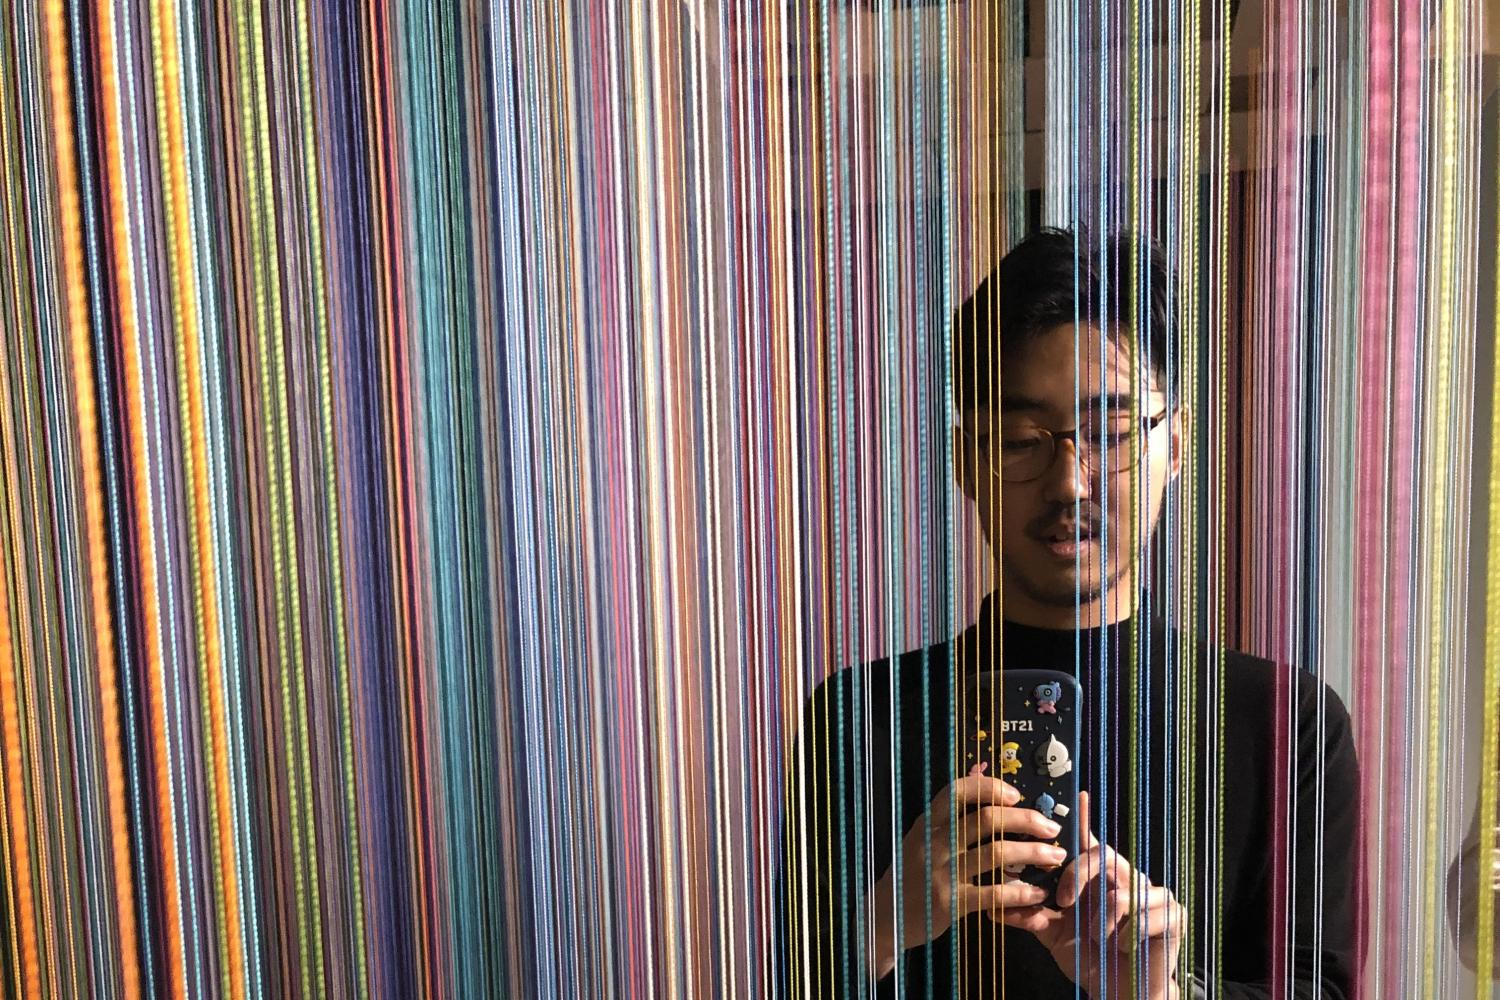 Man with black hair and glasses holding a camera and standing behind a screen of colorful long strands of string.